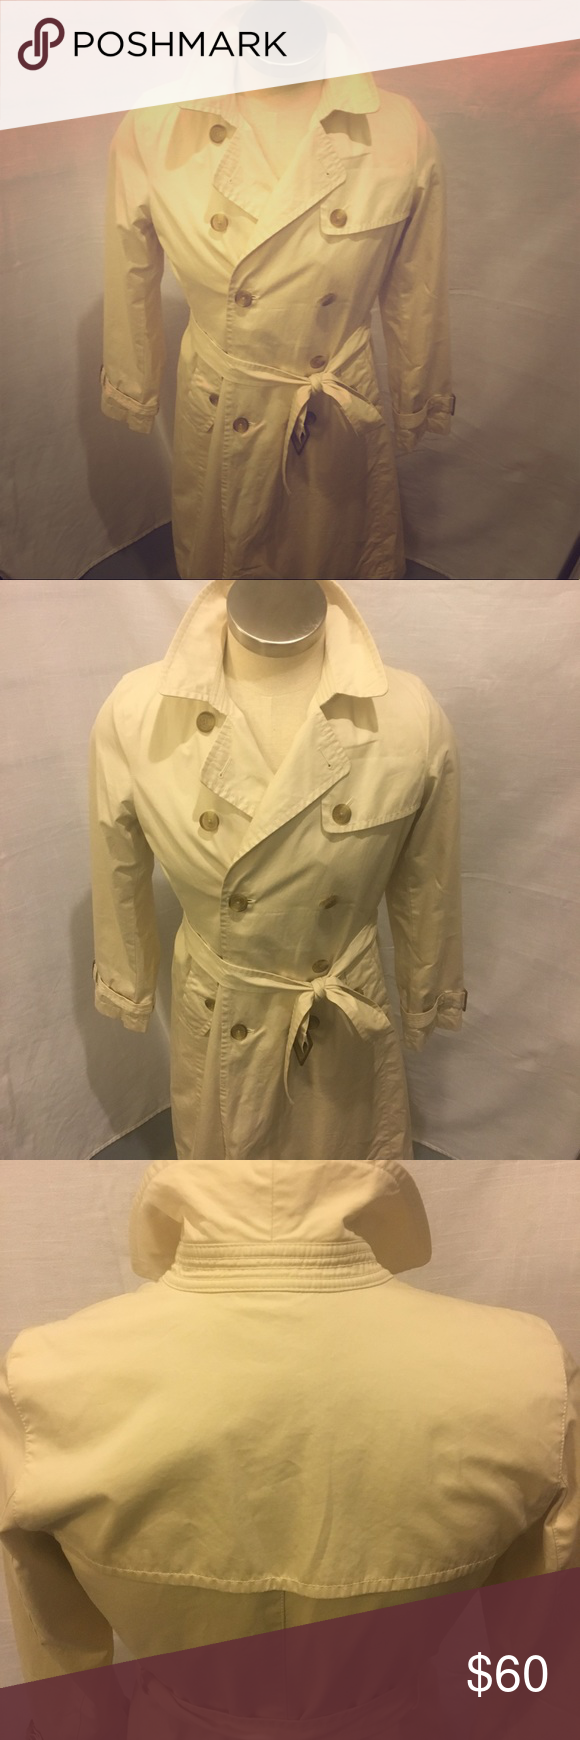 Banana Republic Classic Trench Coat Just in time for spring, the Banana Republic…